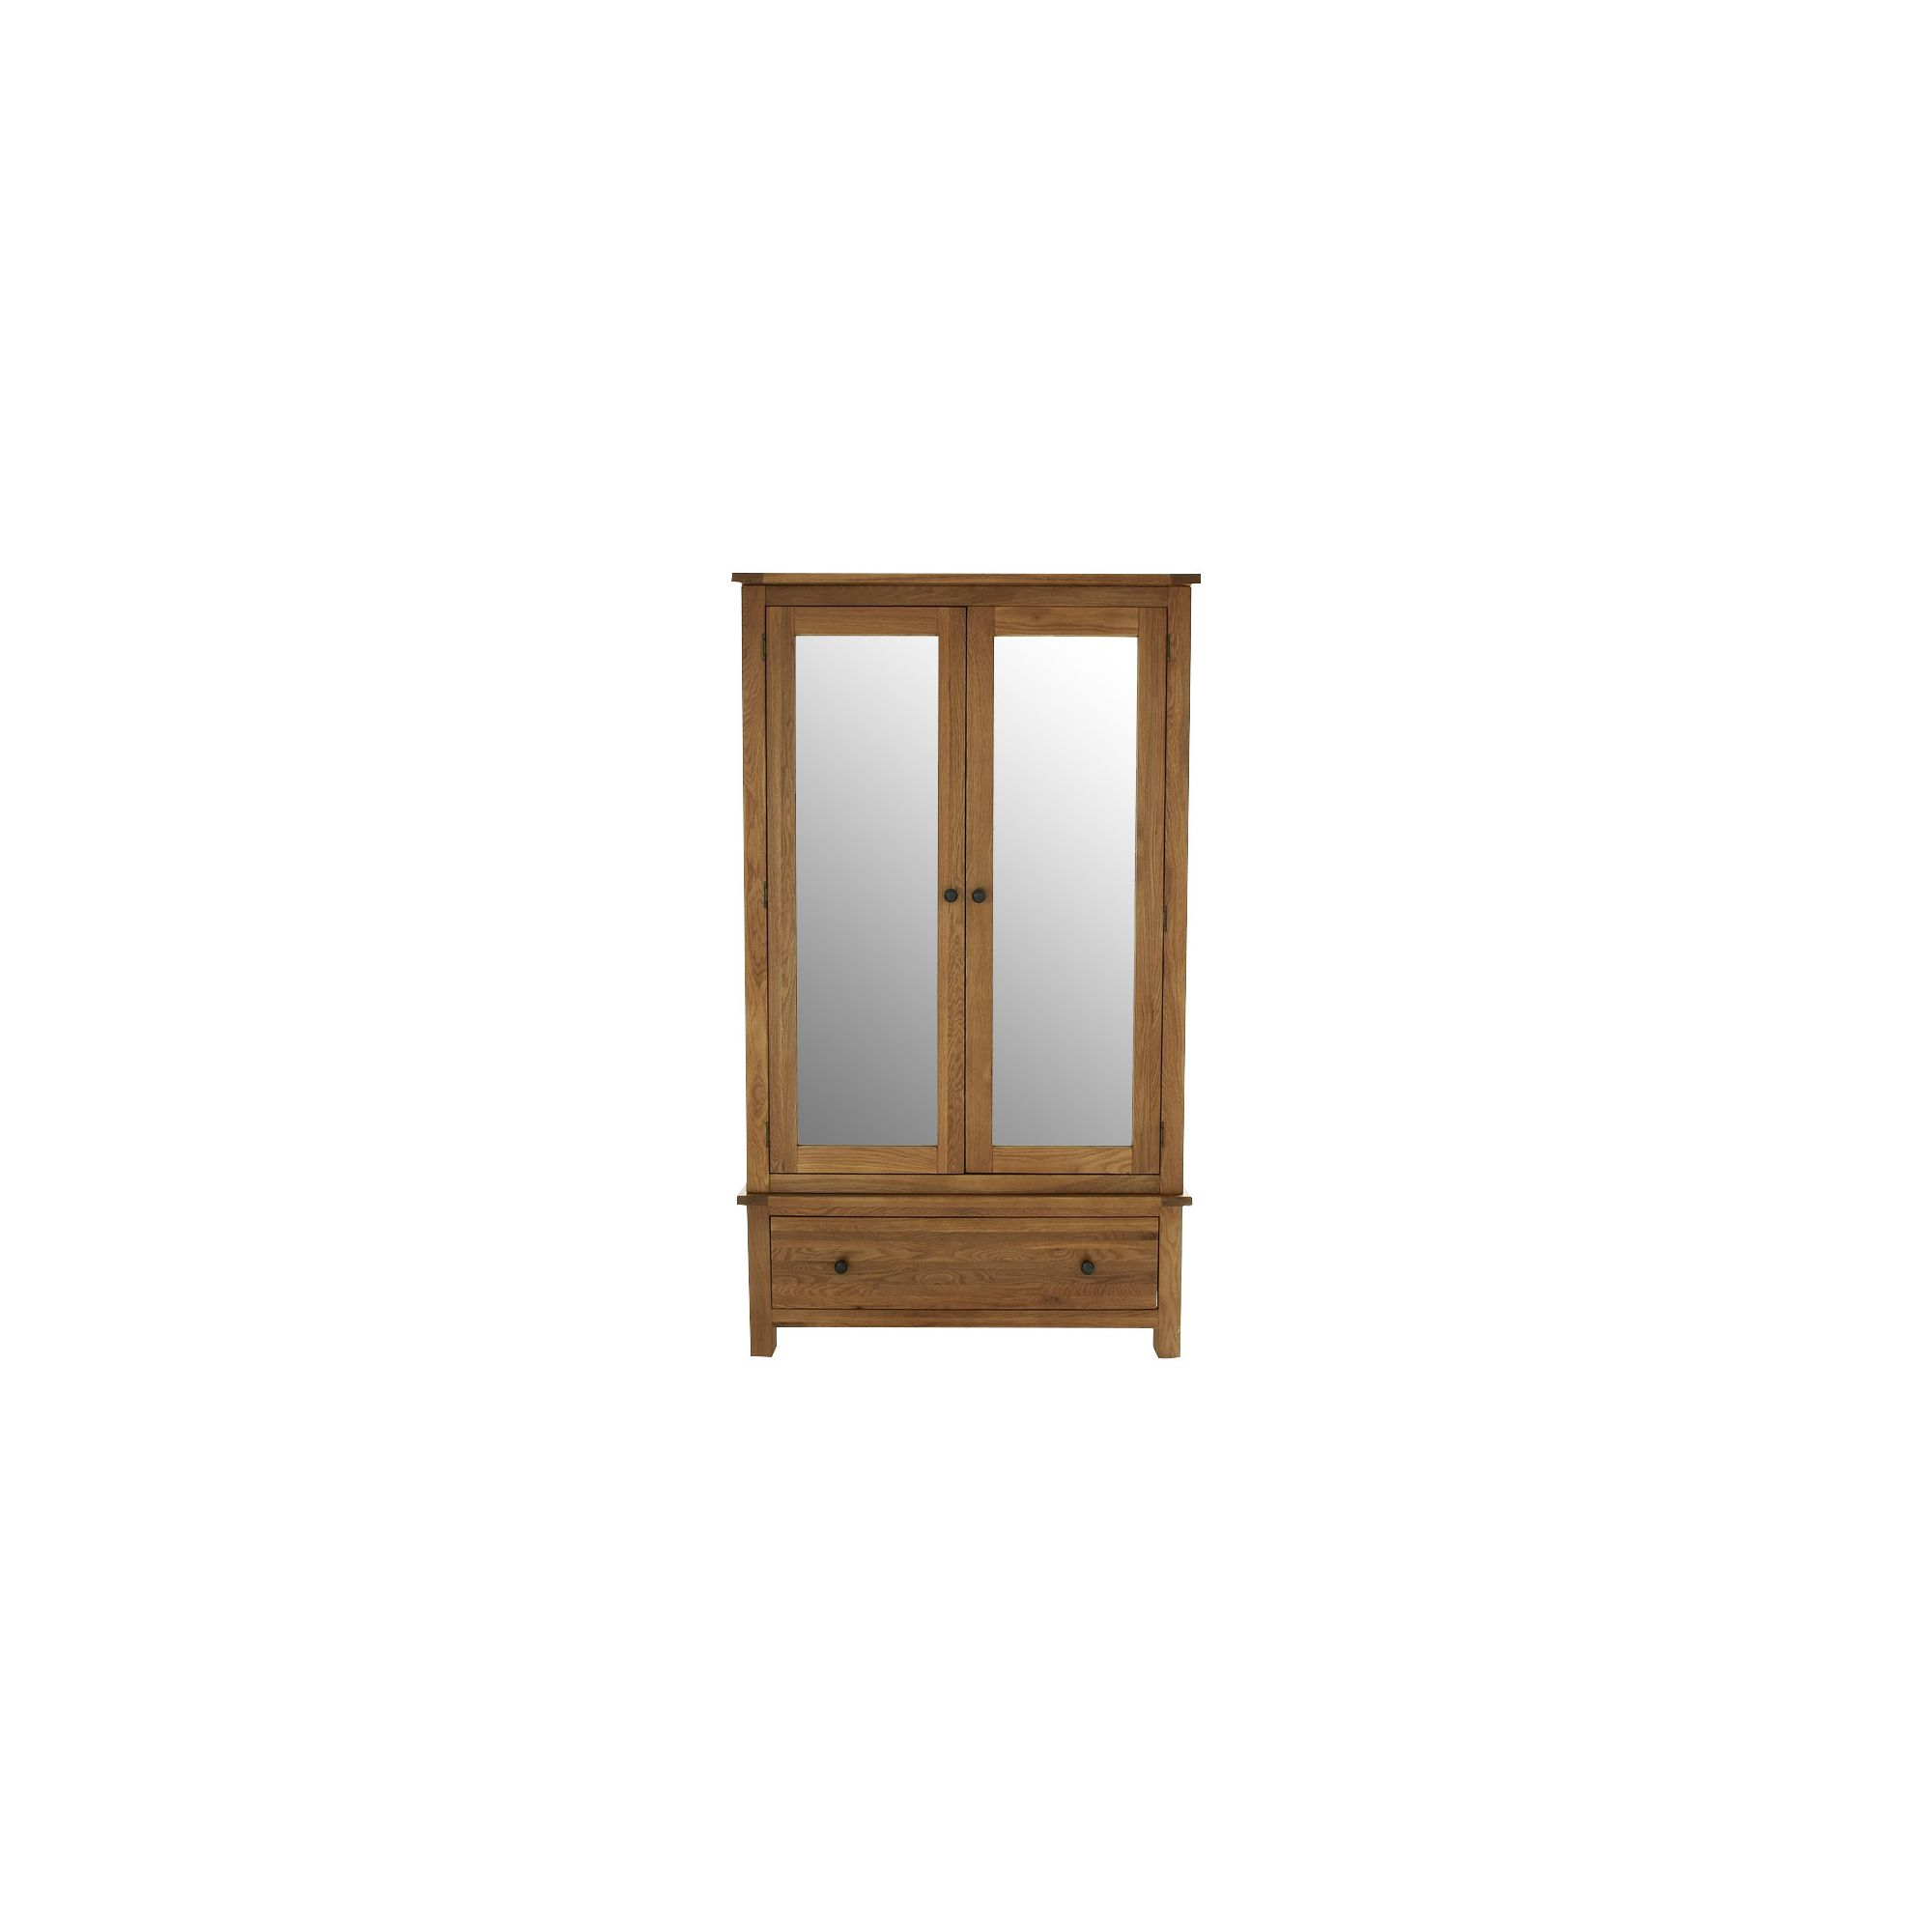 Thorndon Eden Two Door Wardrobe in Warm Oak at Tesco Direct